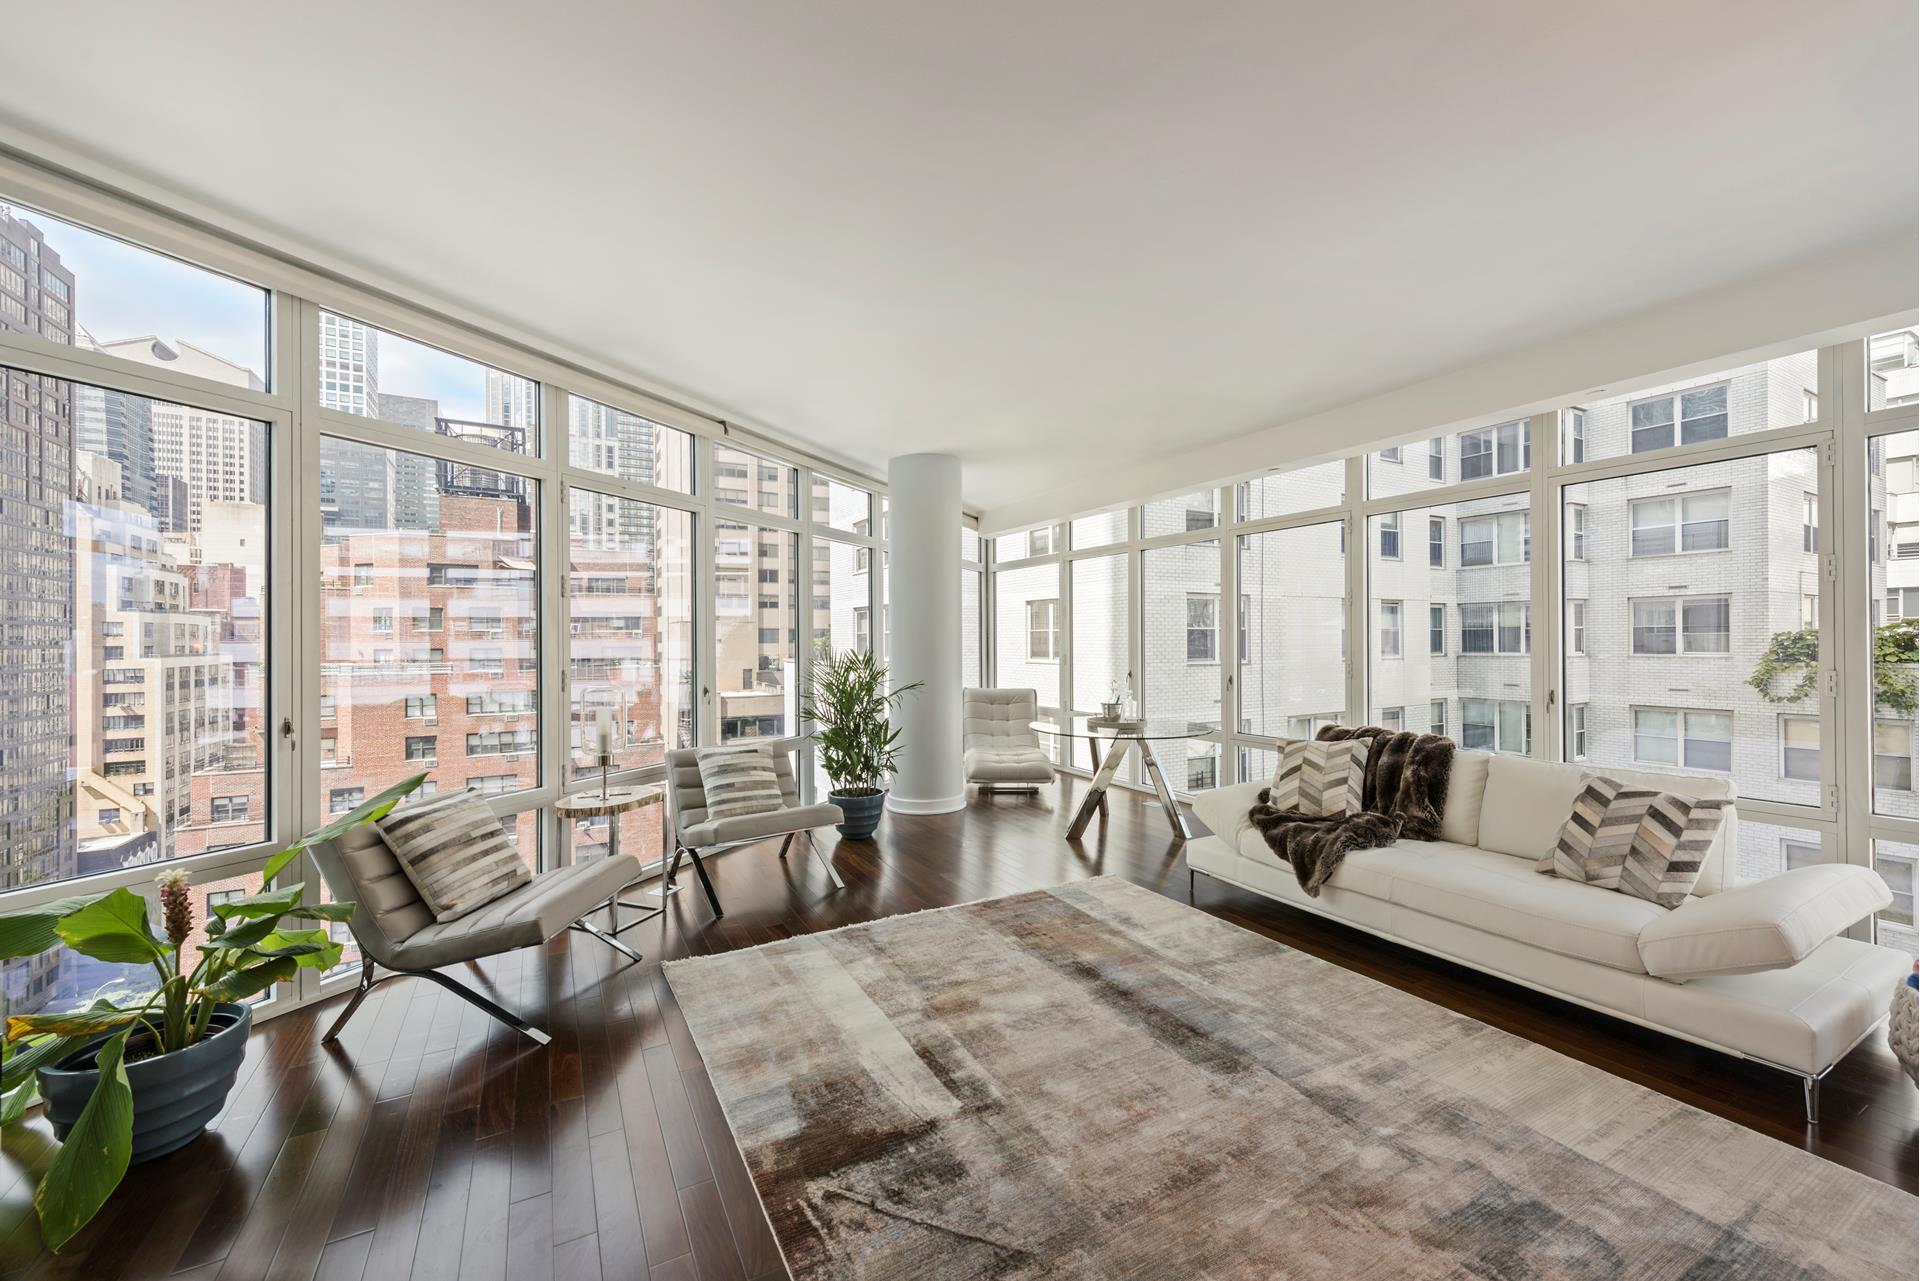 Place 57, 207 East 57th St, 17A - Midtown, New York